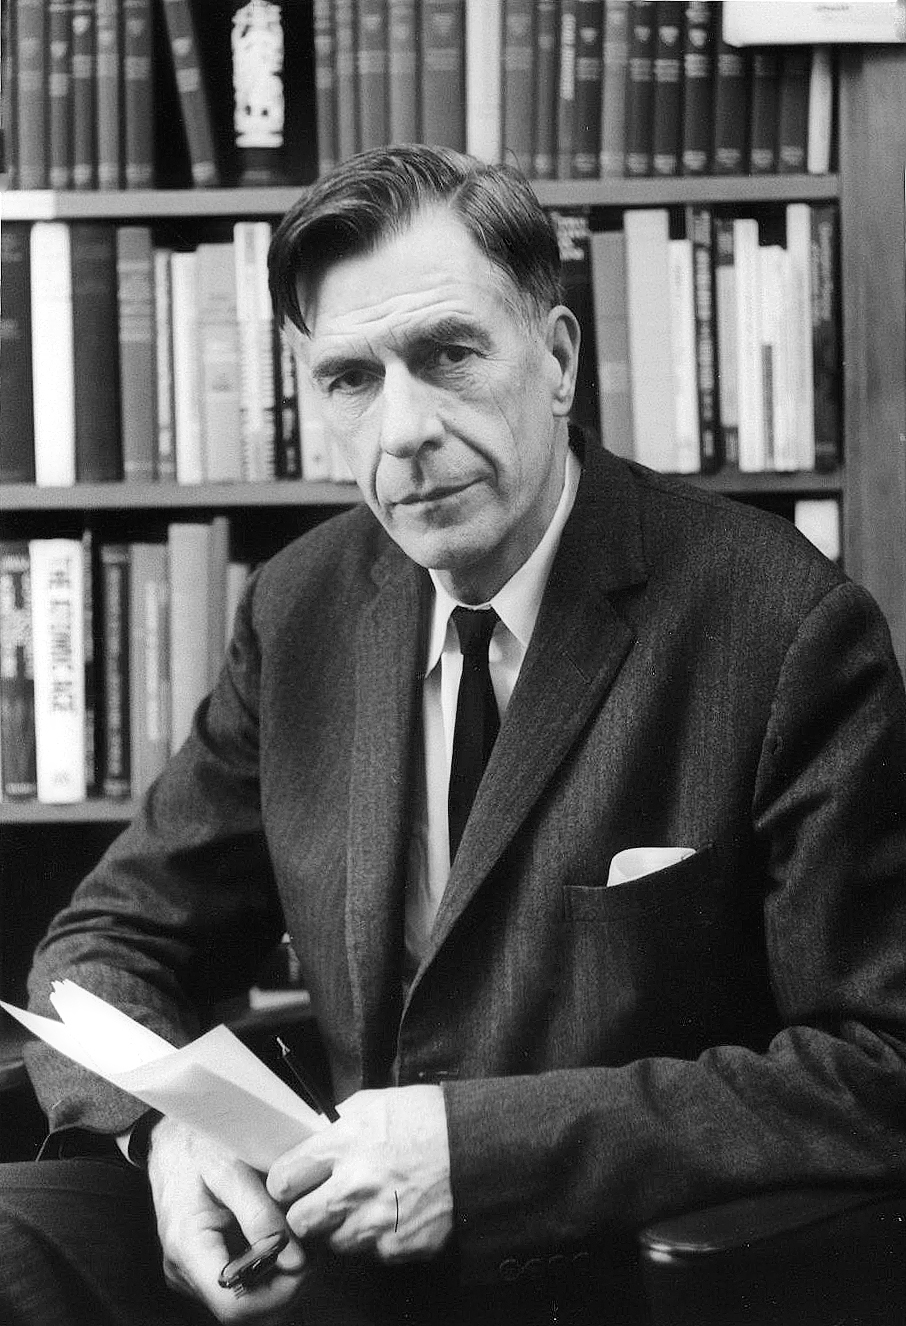 john kenneth galbraith the position of poverty essay From his essay the position of poverty  what is the cause of poverty according to galbraith from his essay the position of poverty follow.